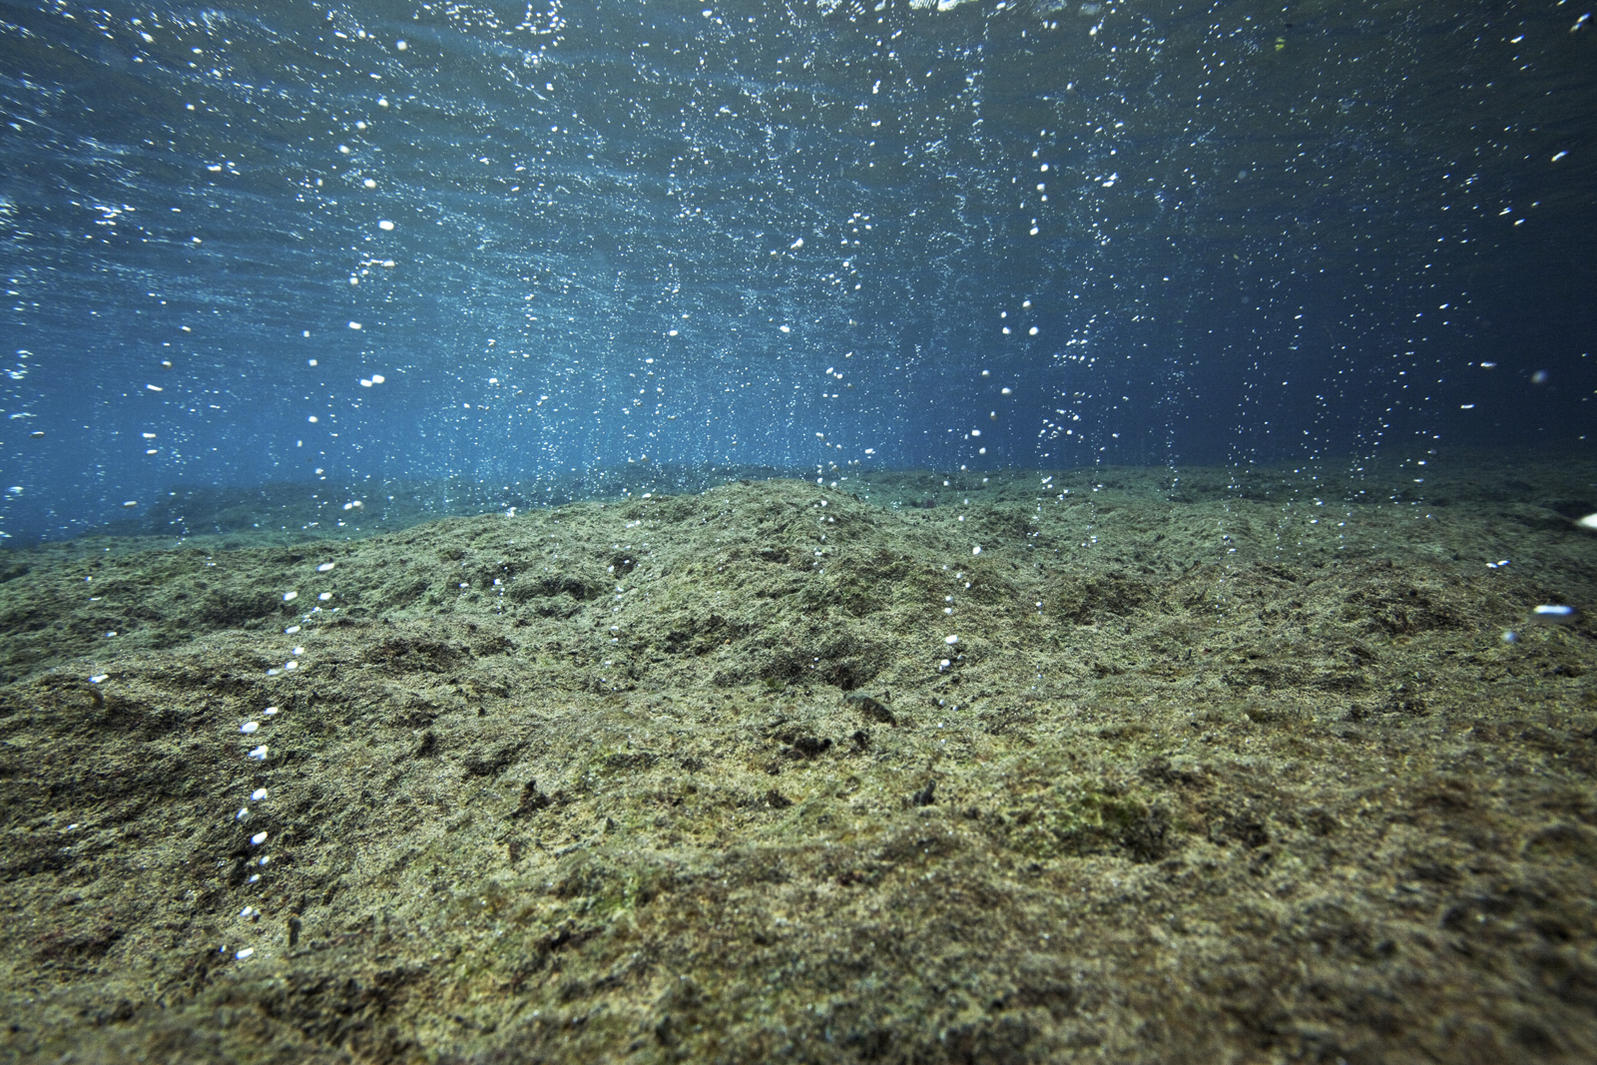 CO2 bubbling from seafloor vents acidifies the water. Ischia, Italy. Credit: David Liittschwager/National Geographic Society/Corbis